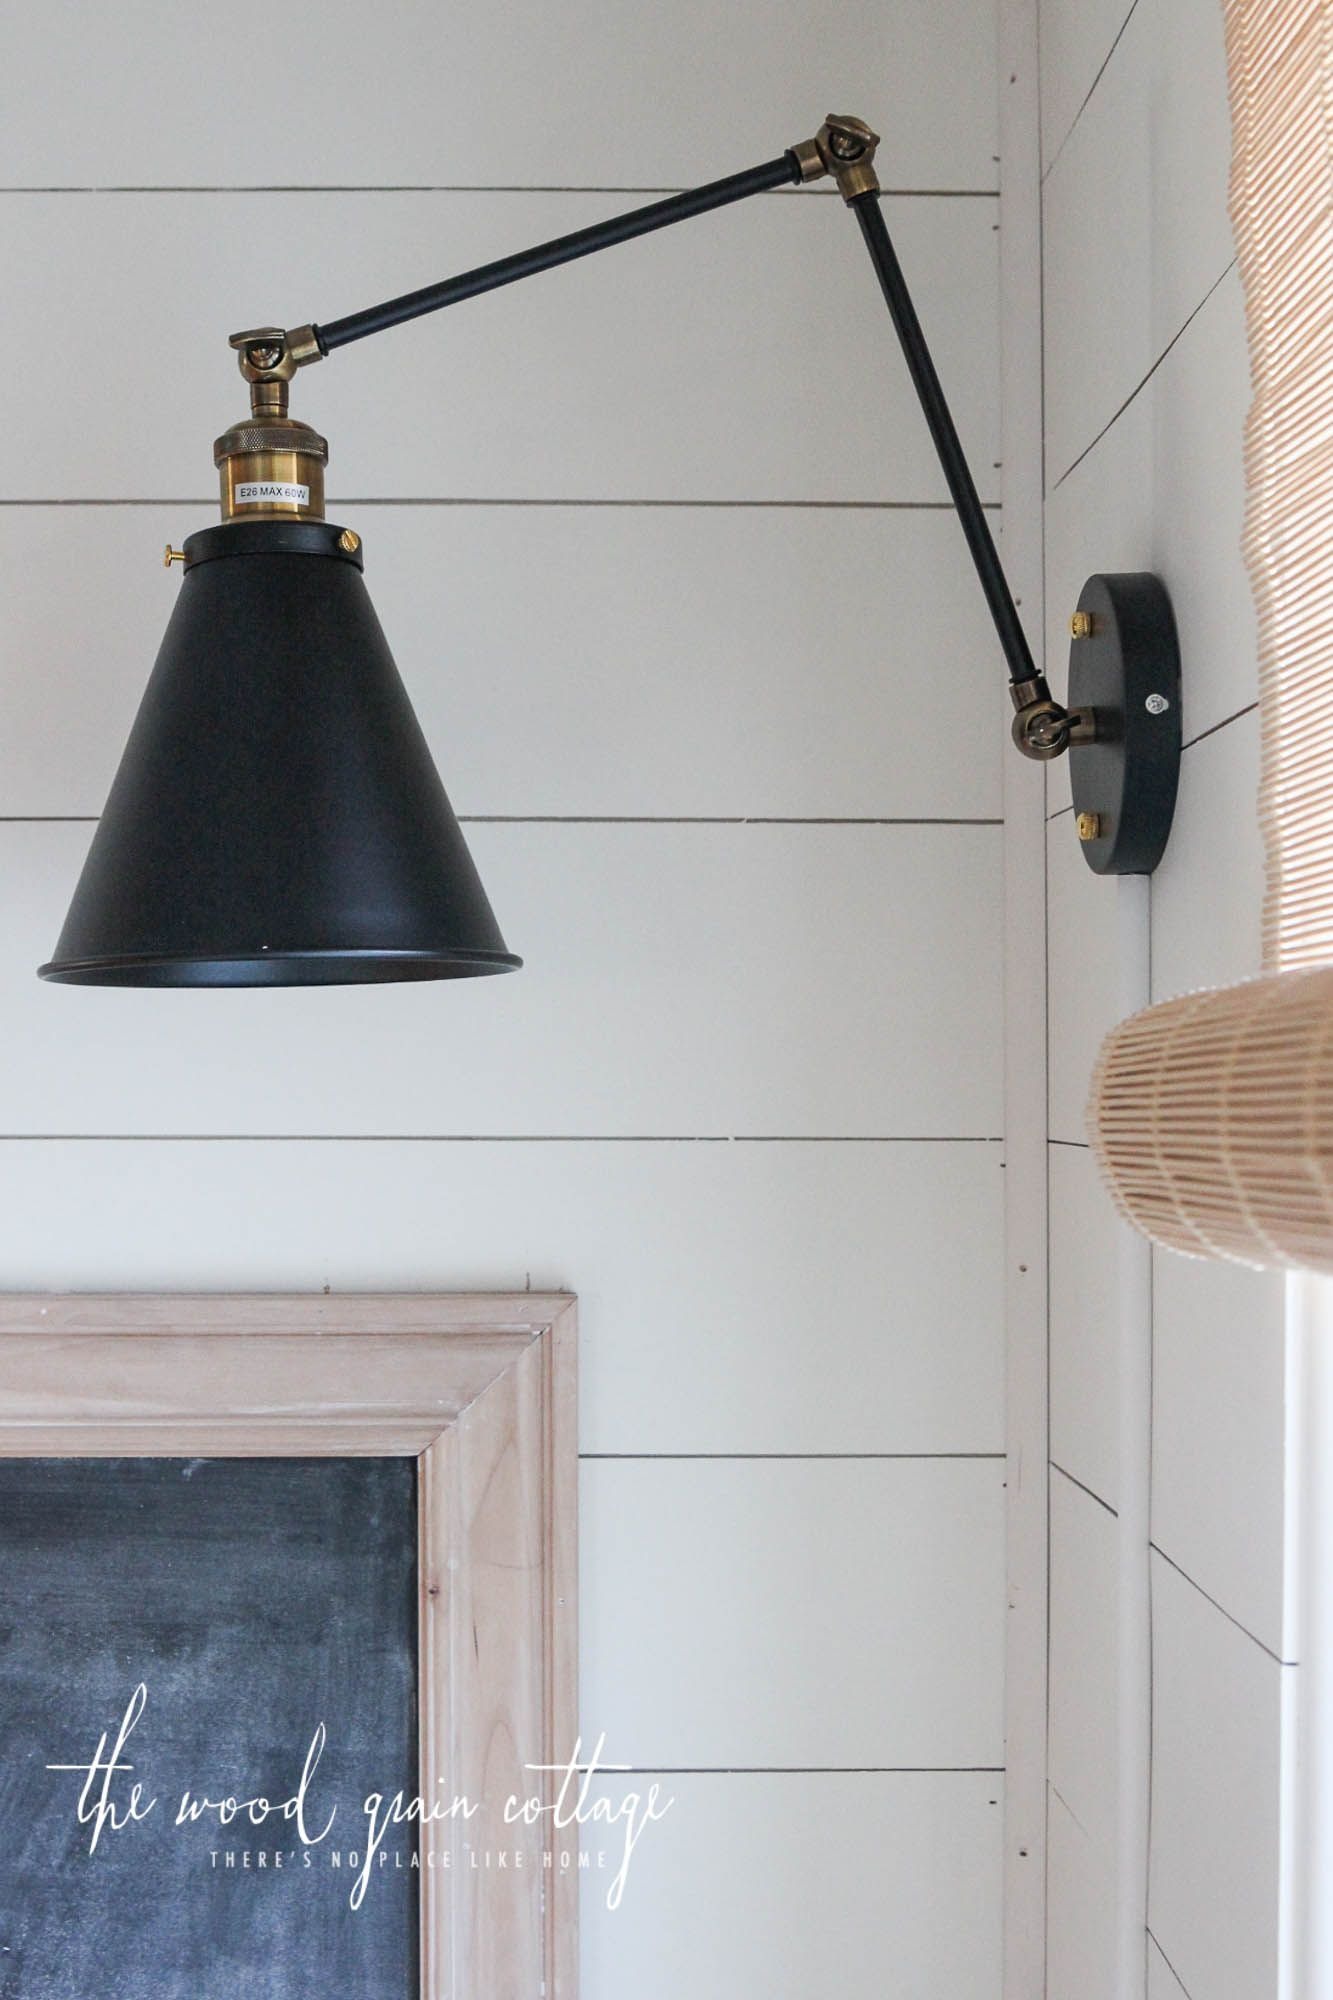 Wall Lights In The Breakfast Nook The Wood Grain Cottage Wall